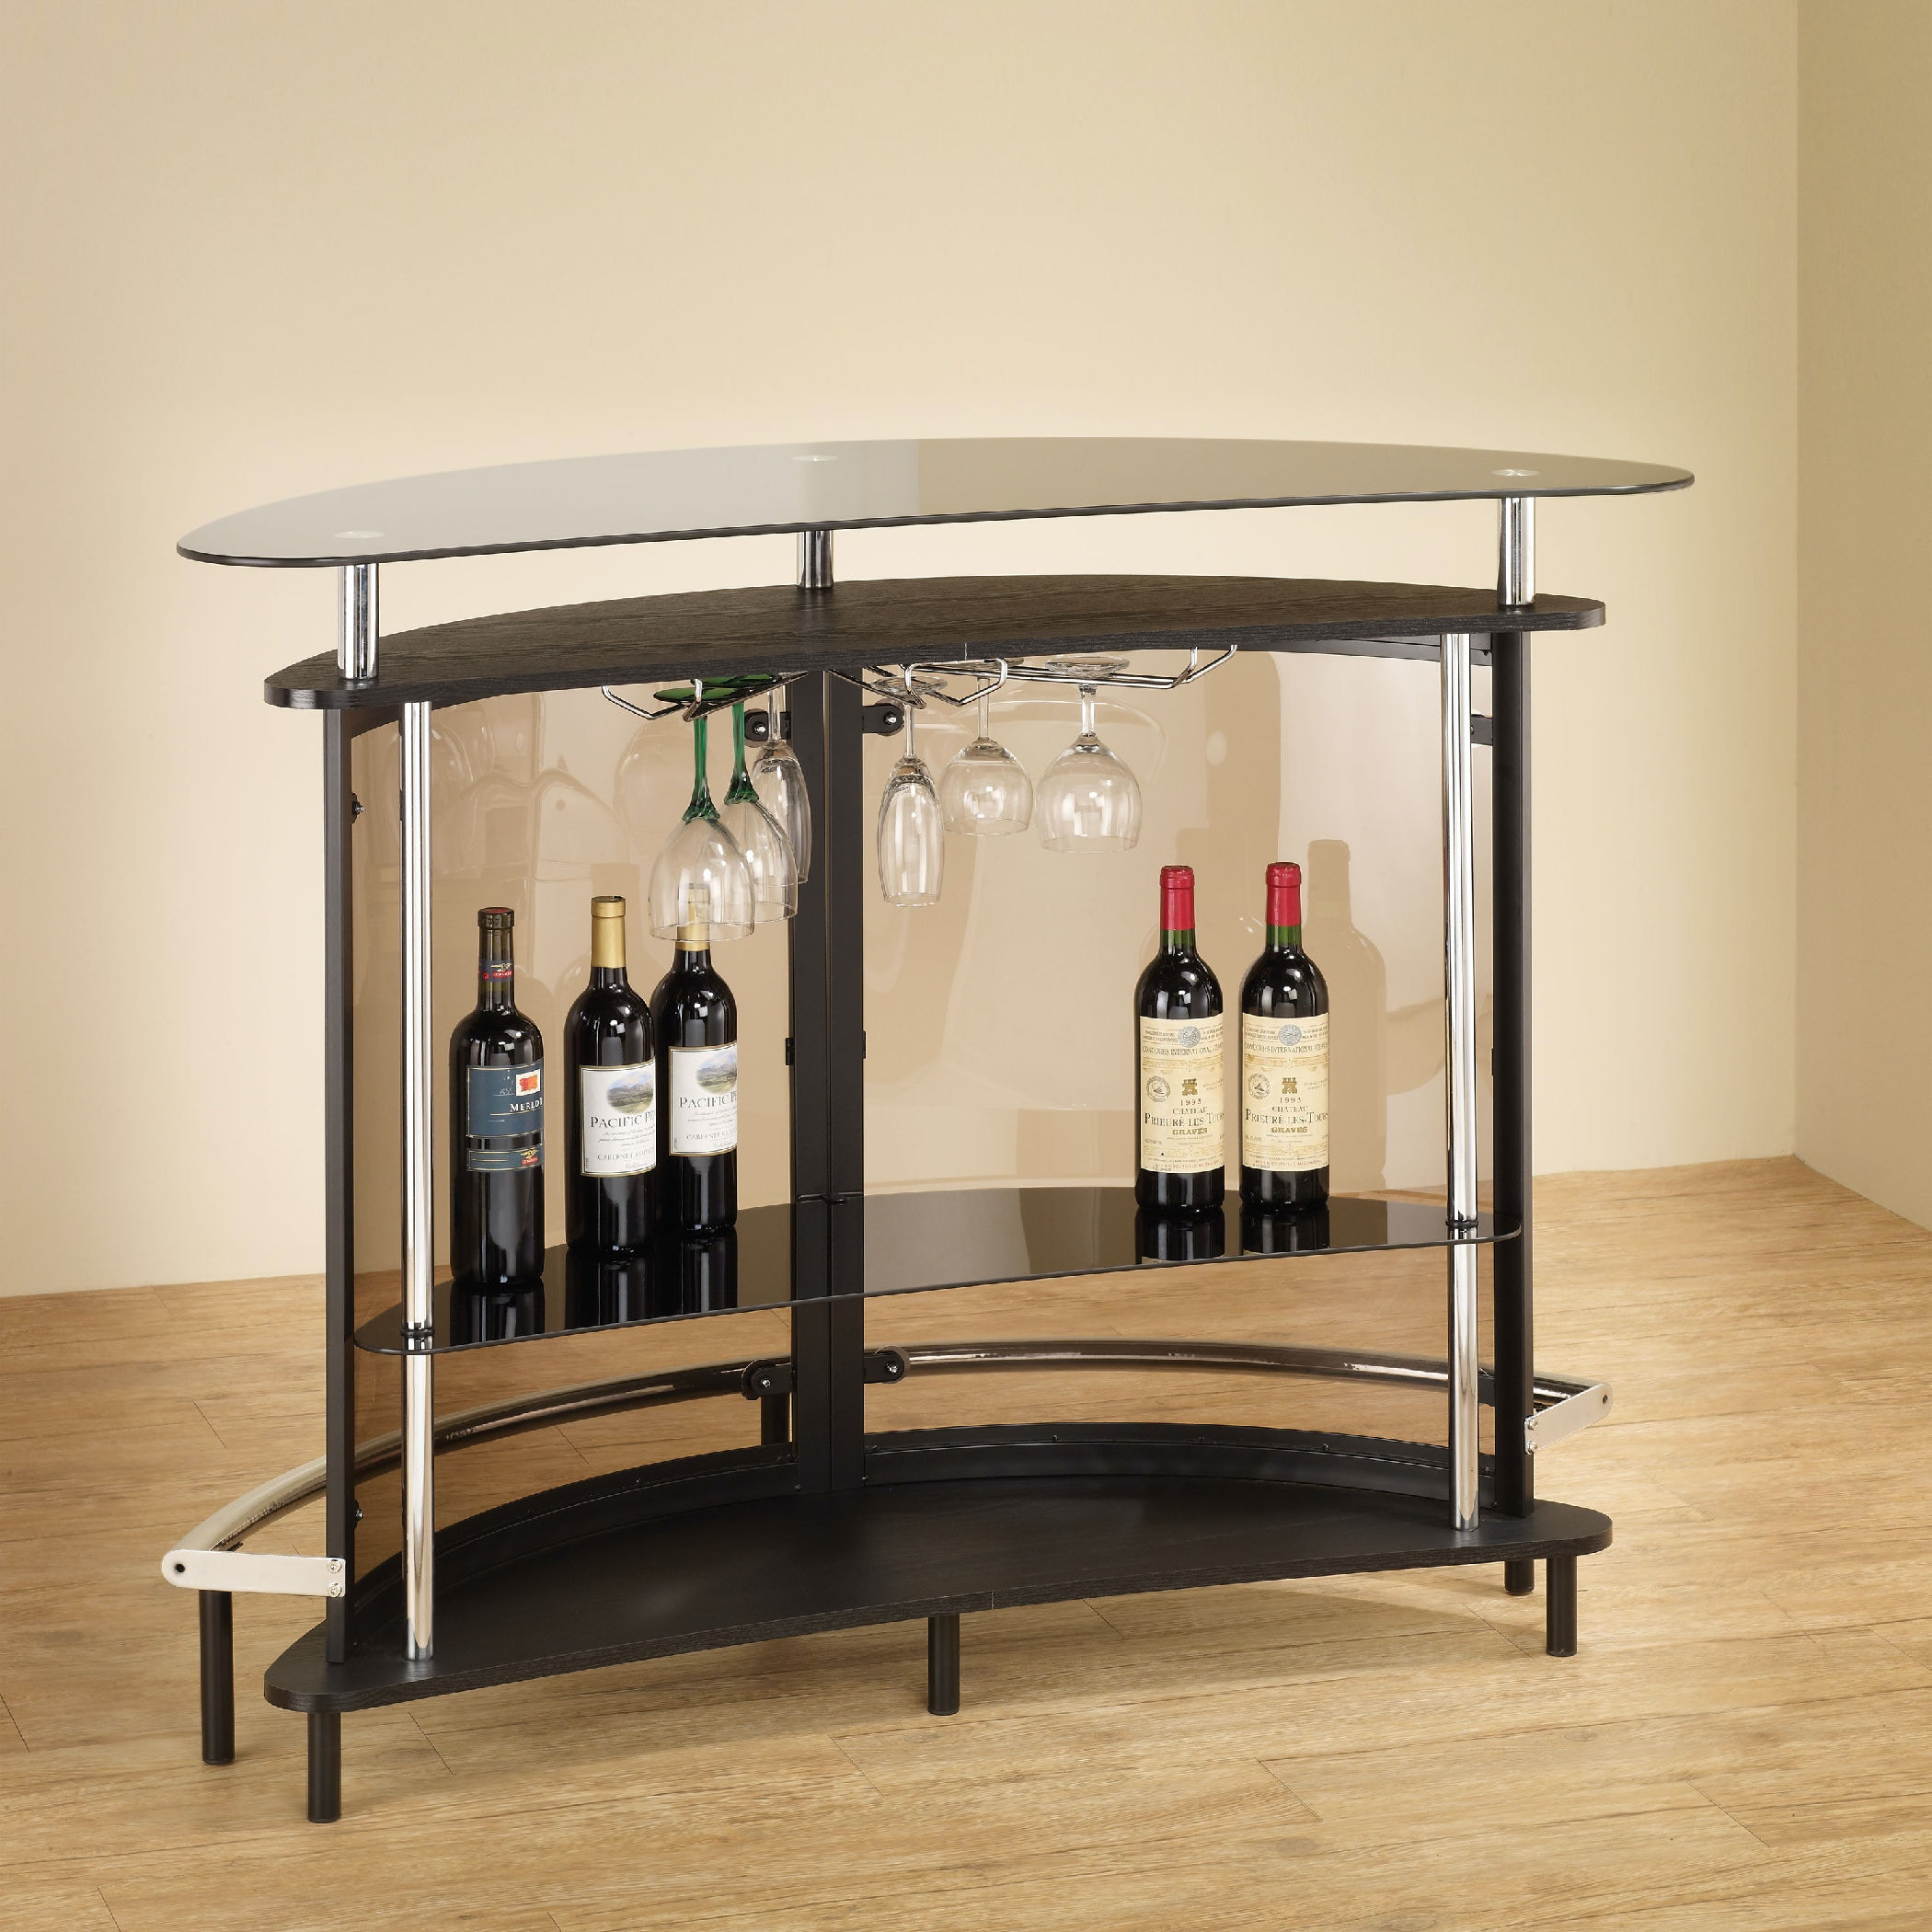 Amazing Coaster Bar Units And Bar Tables Contemporary Bar Unit With Smoked Acrylic  Front 101065